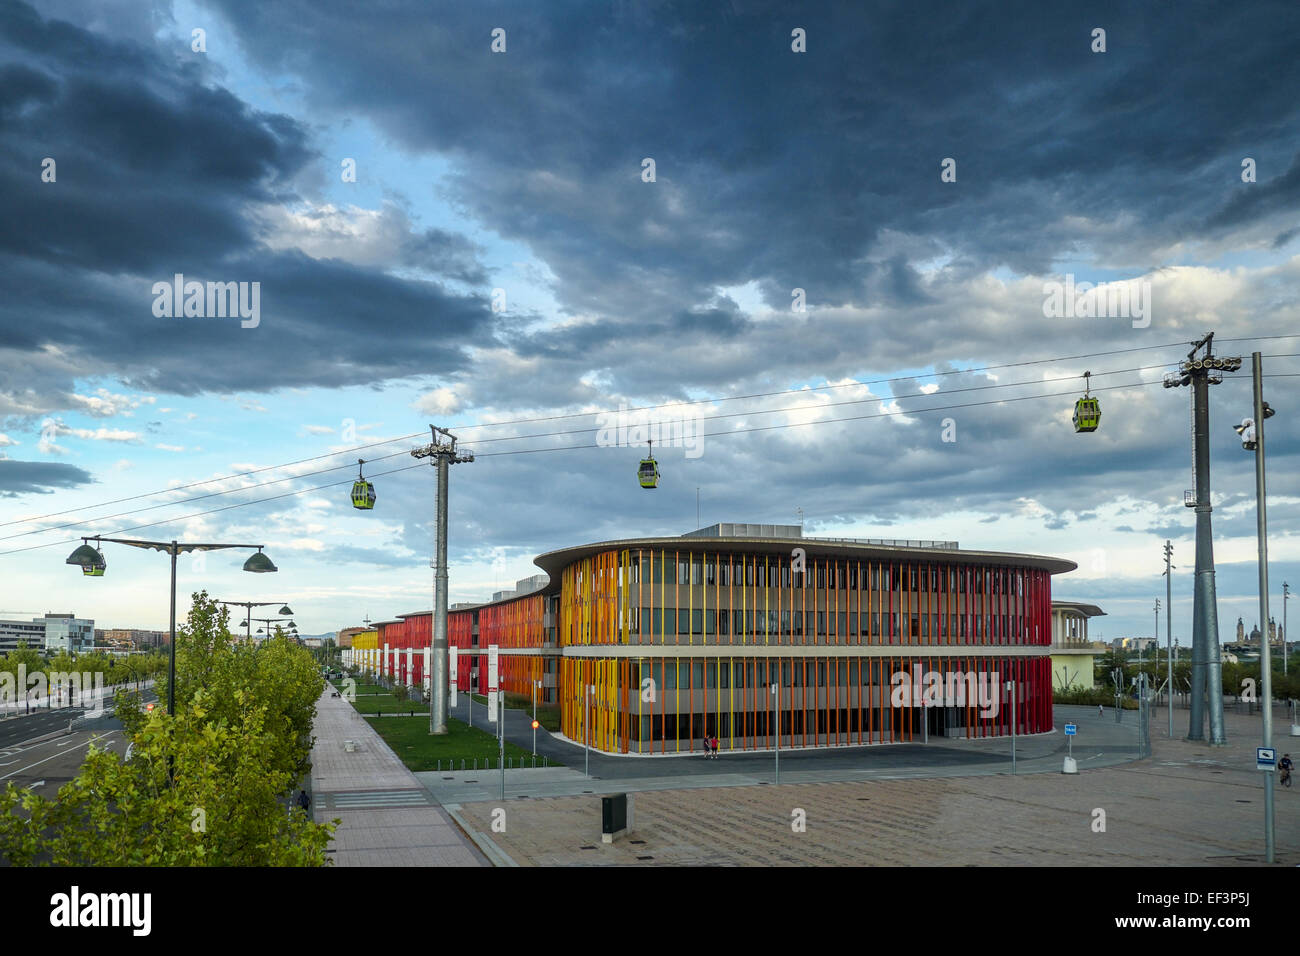 Expozaragoza exhibition area during a summerly storm, Saragossa, Aragón, Spain Europe - Stock Image